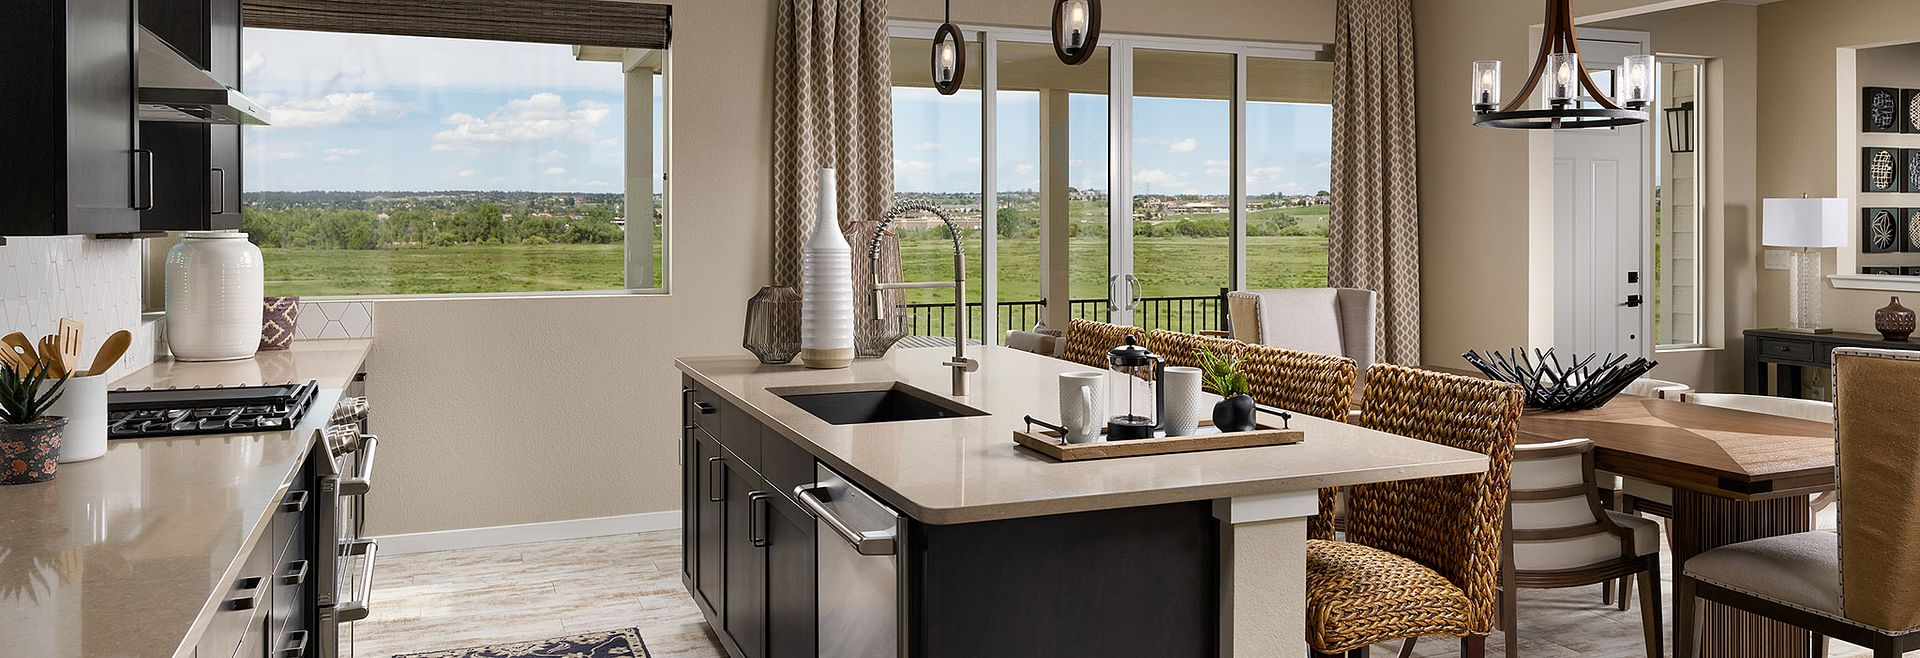 Crescendo at Central Park Plan 2205 Kitchen